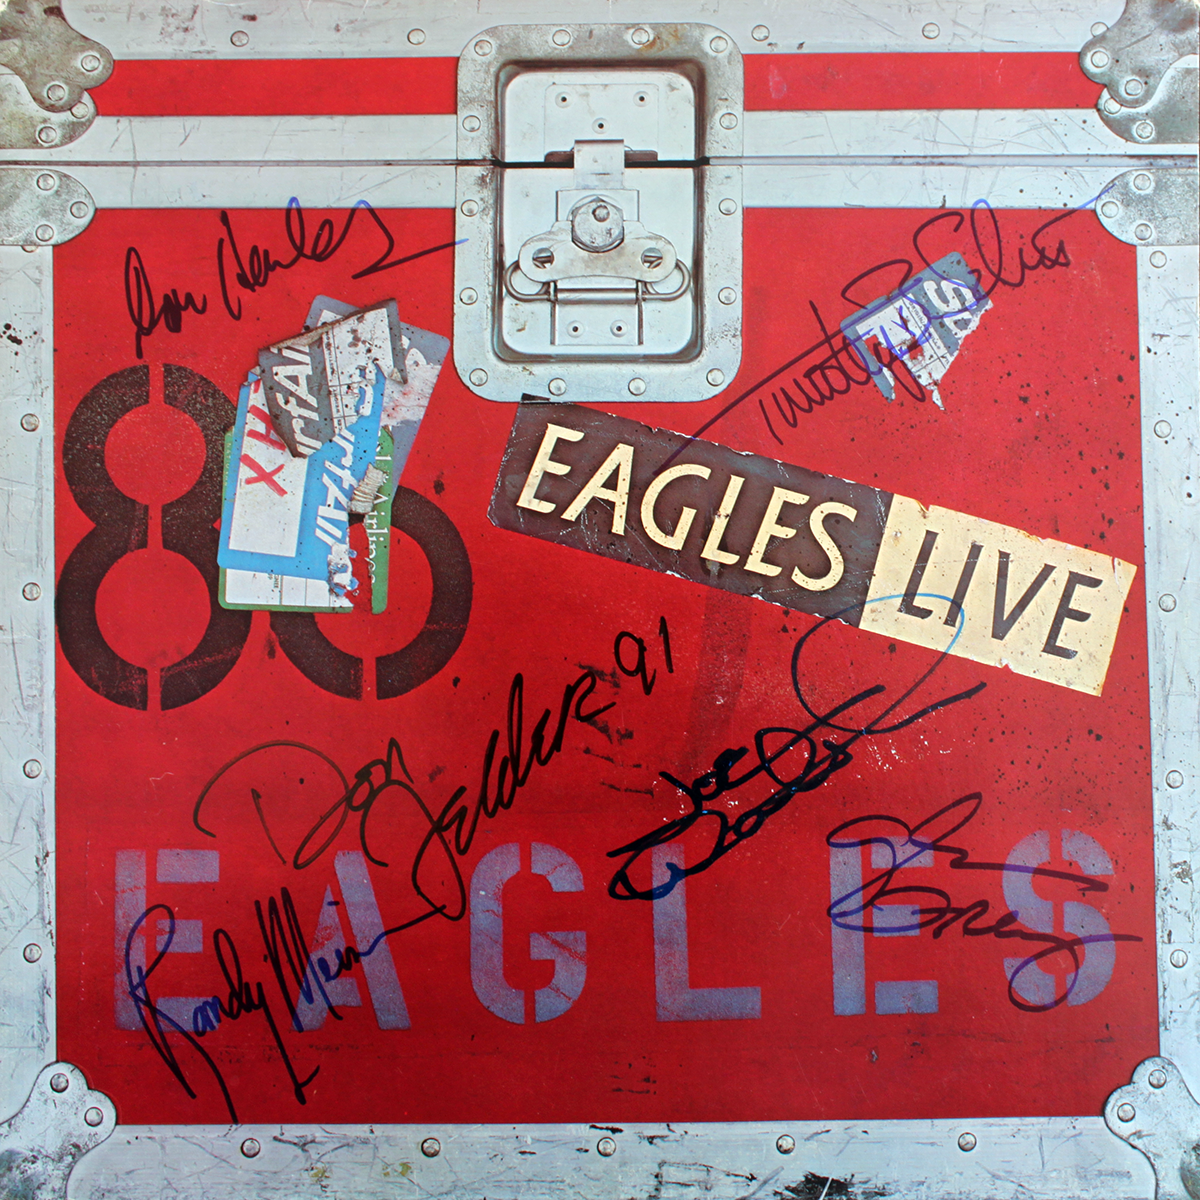 Eagles LP - Eagles Live #2